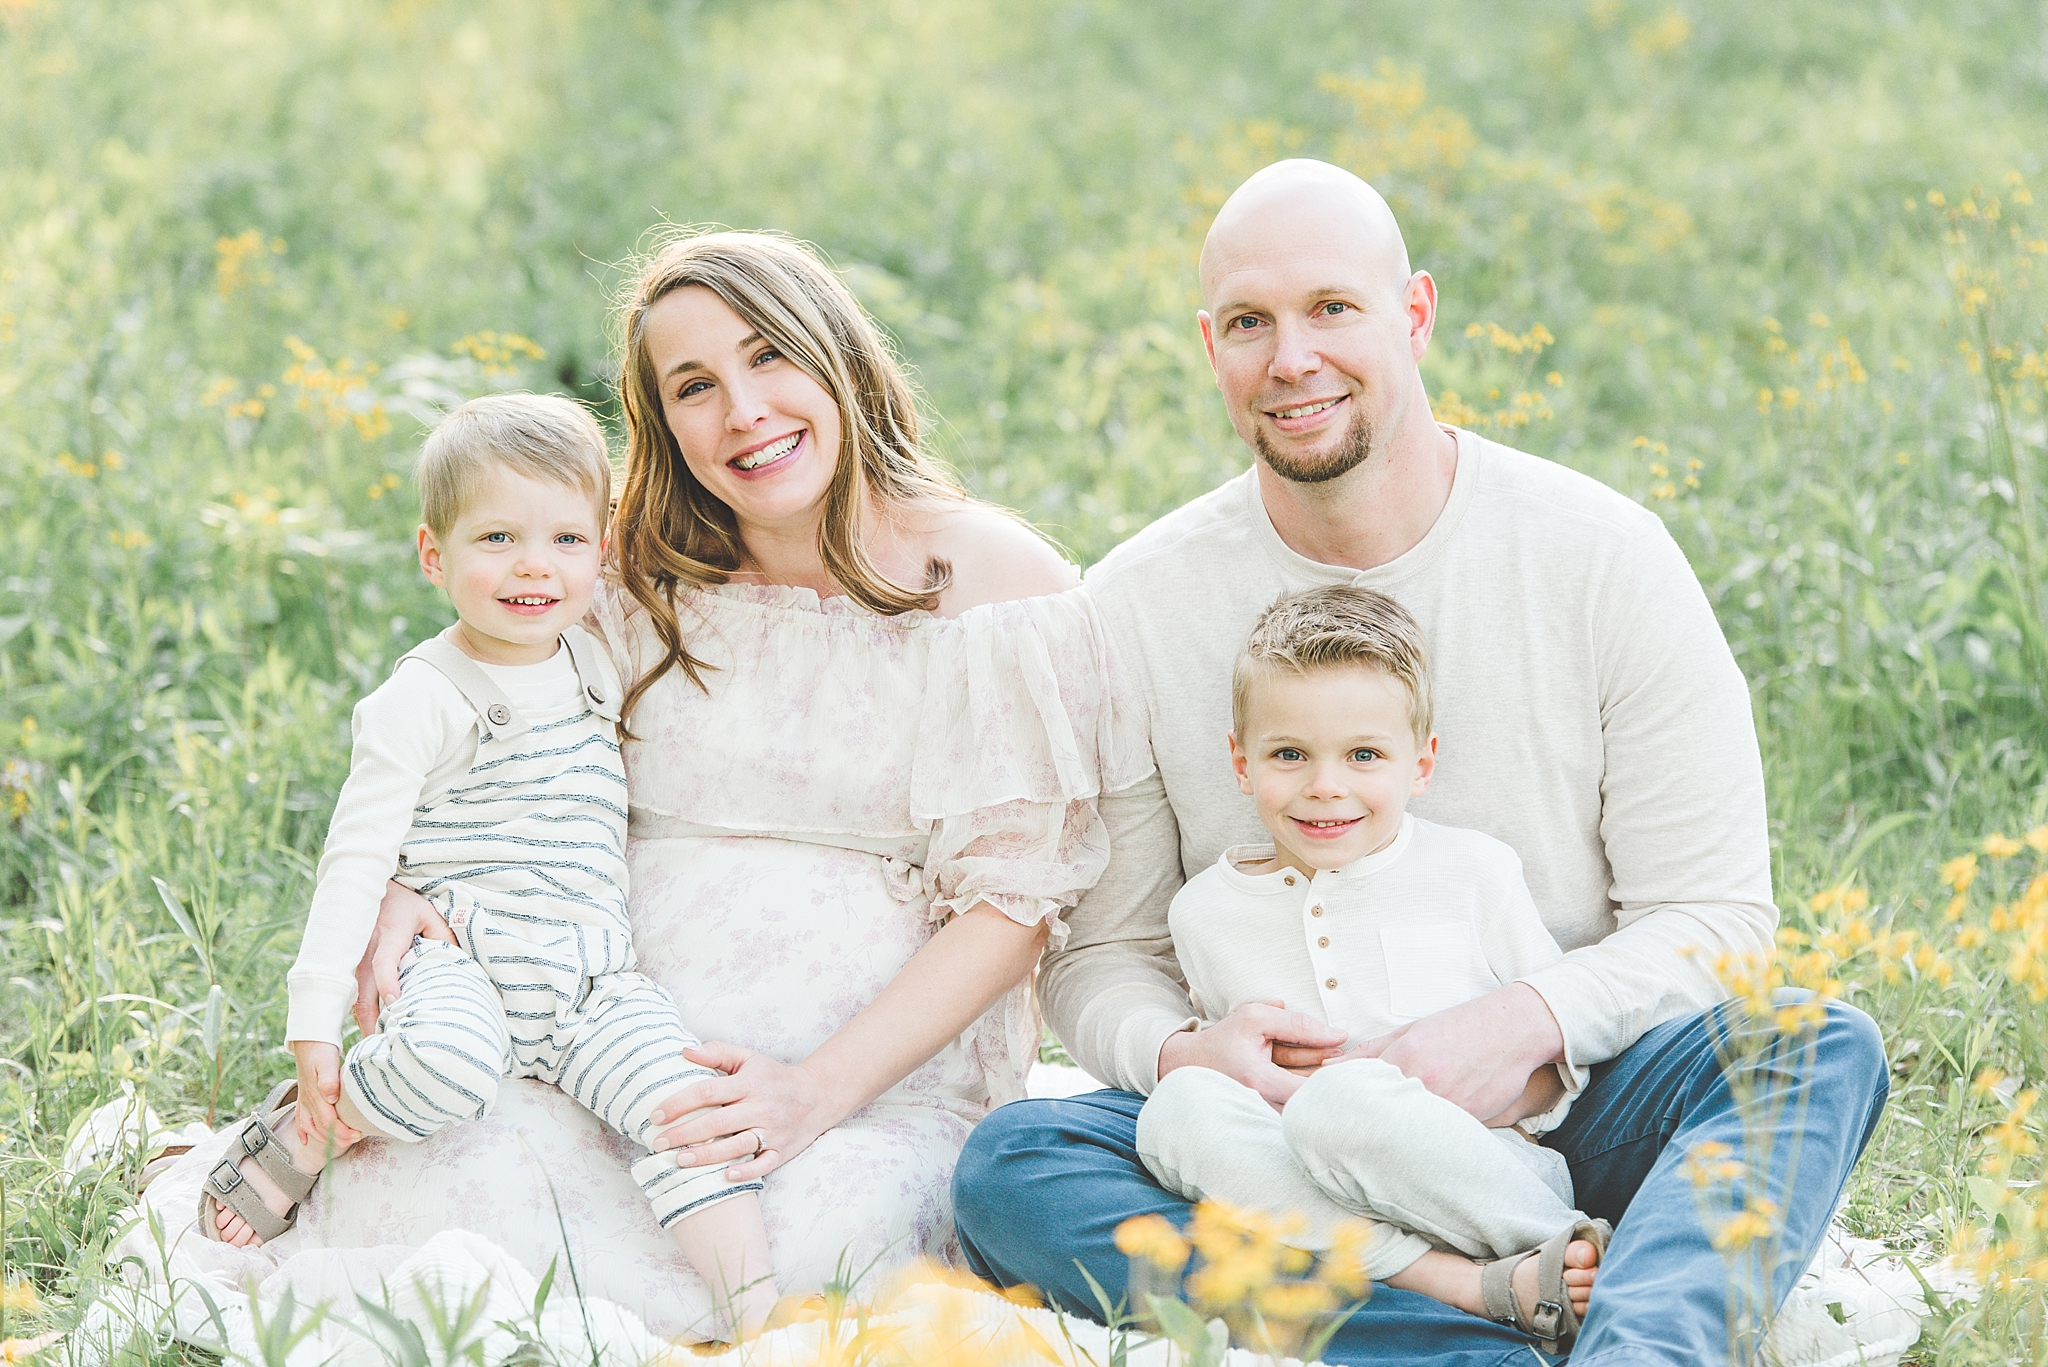 Springboro Ohio Maternity Photographer | The Crowley Family